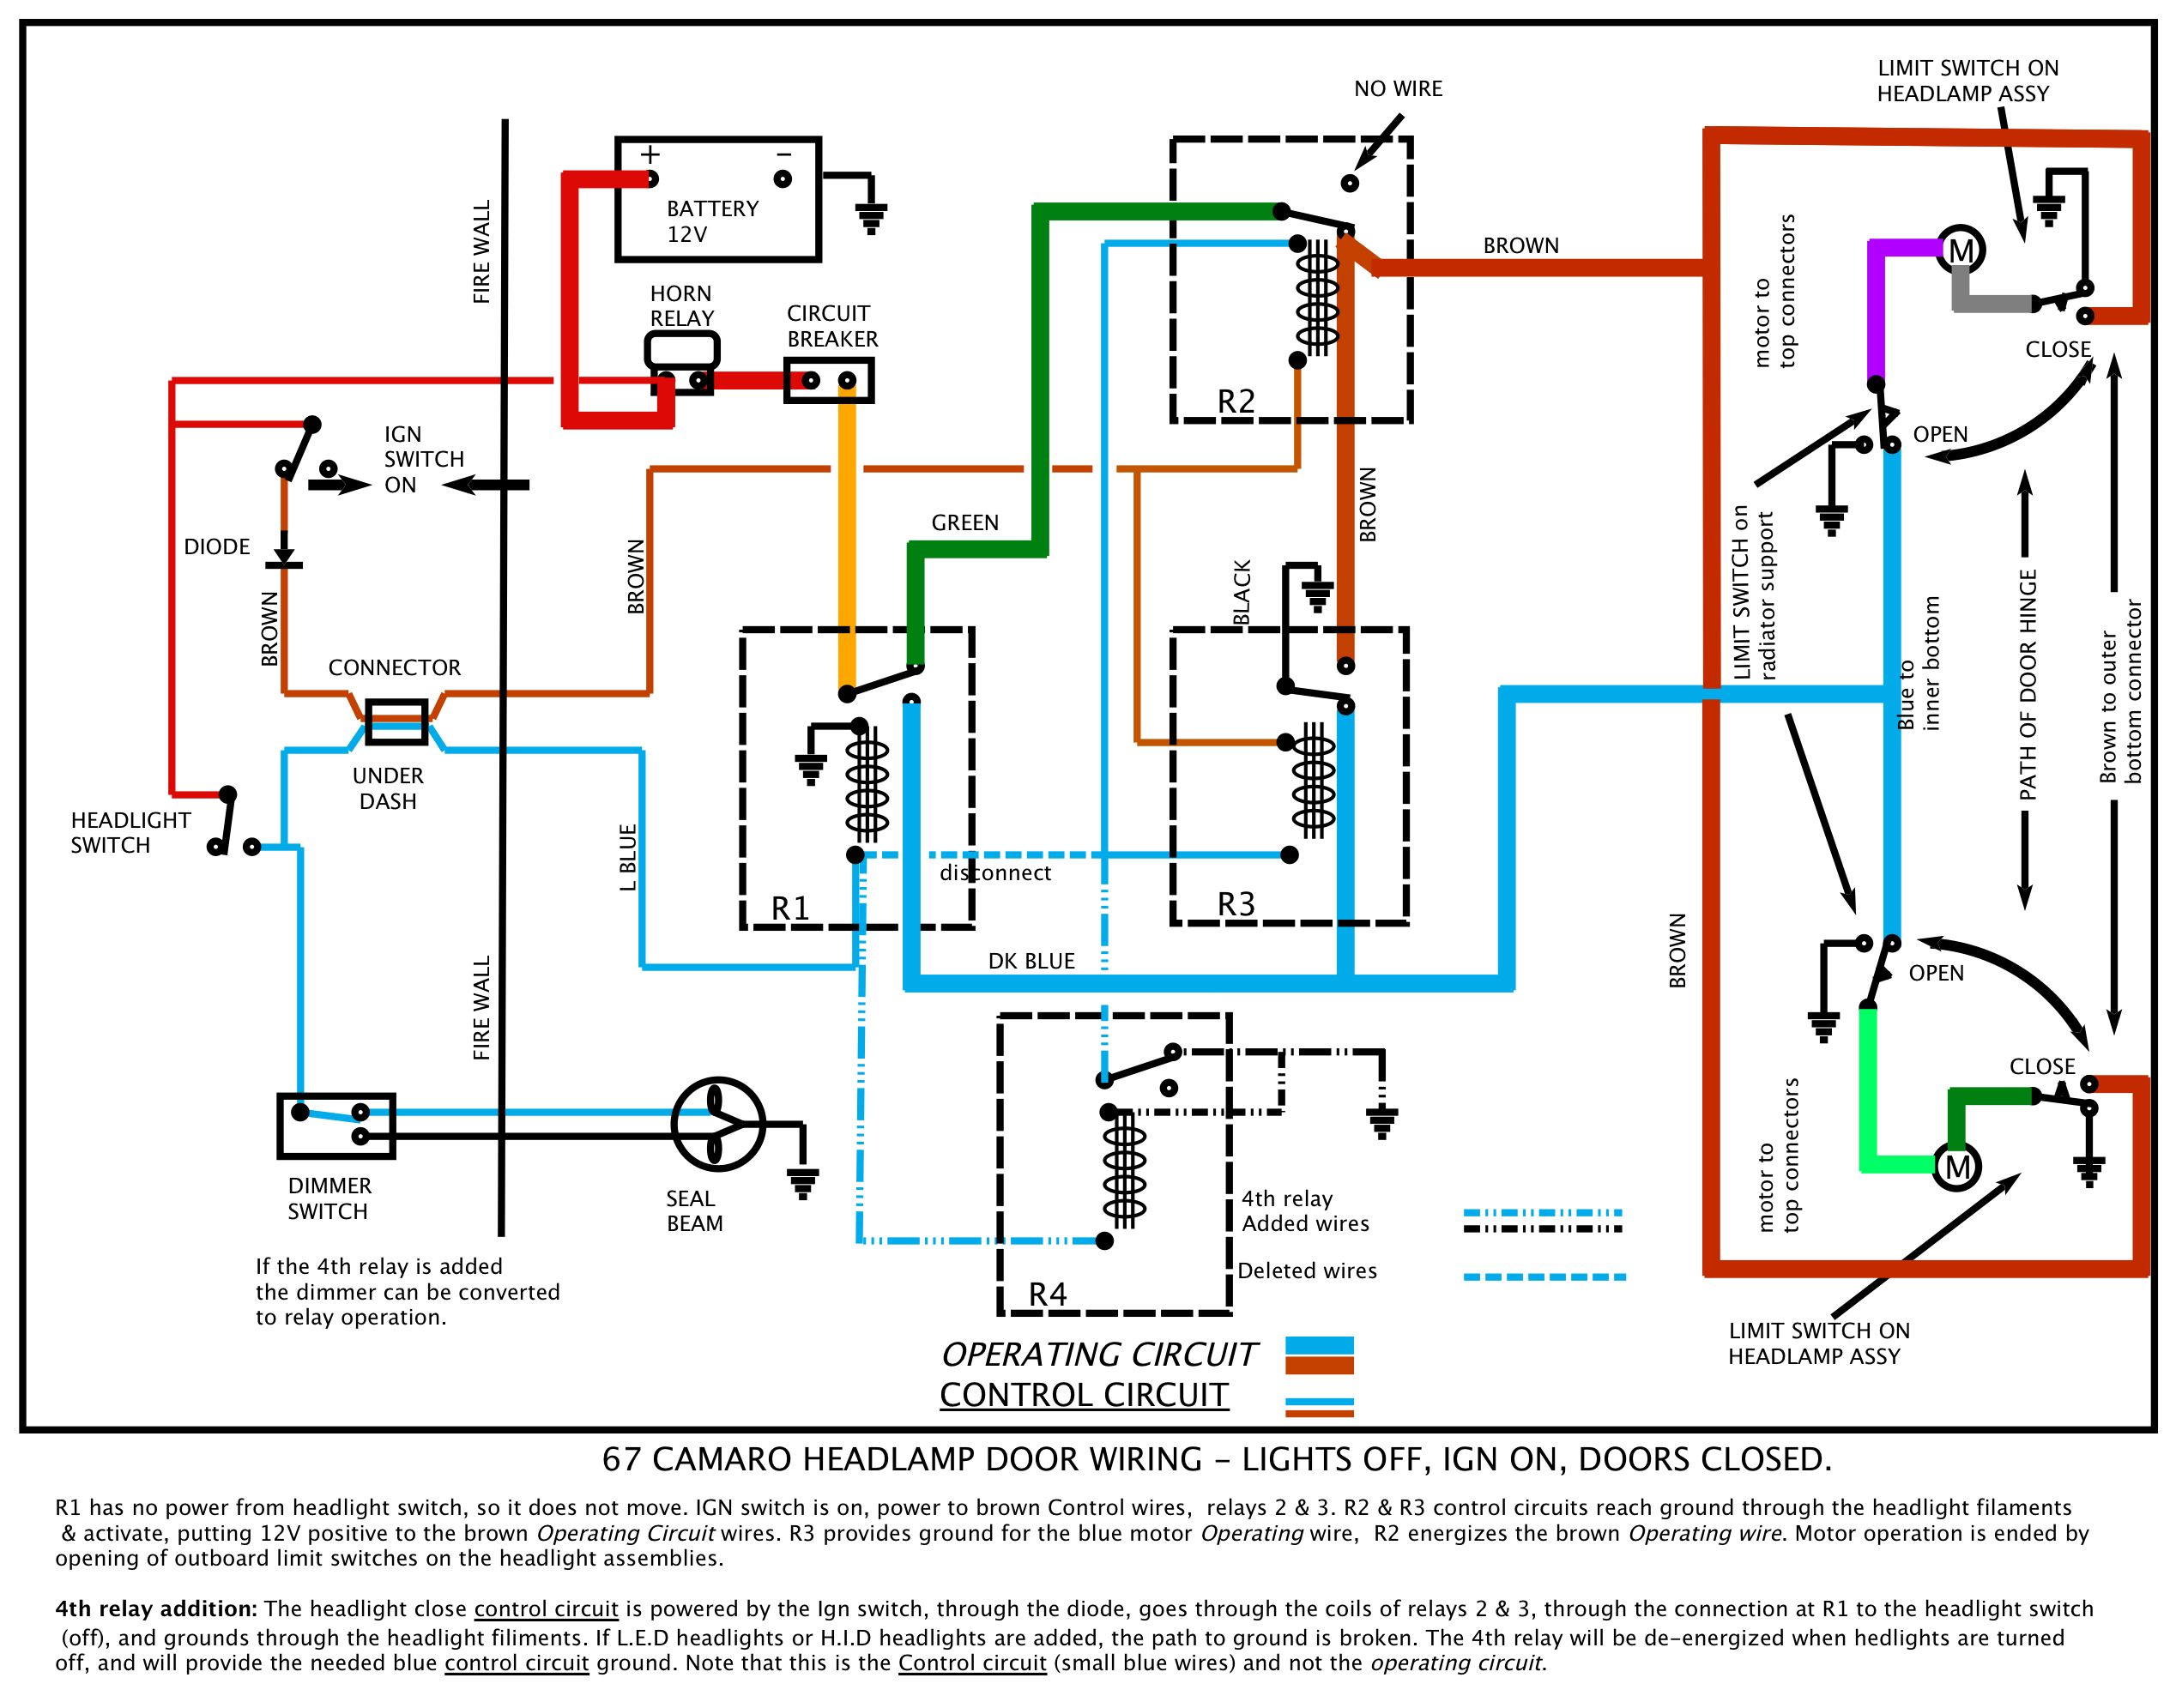 325i Cooling System Diagram Also 1968 Chevy Impala 327 Vacuum Diagram